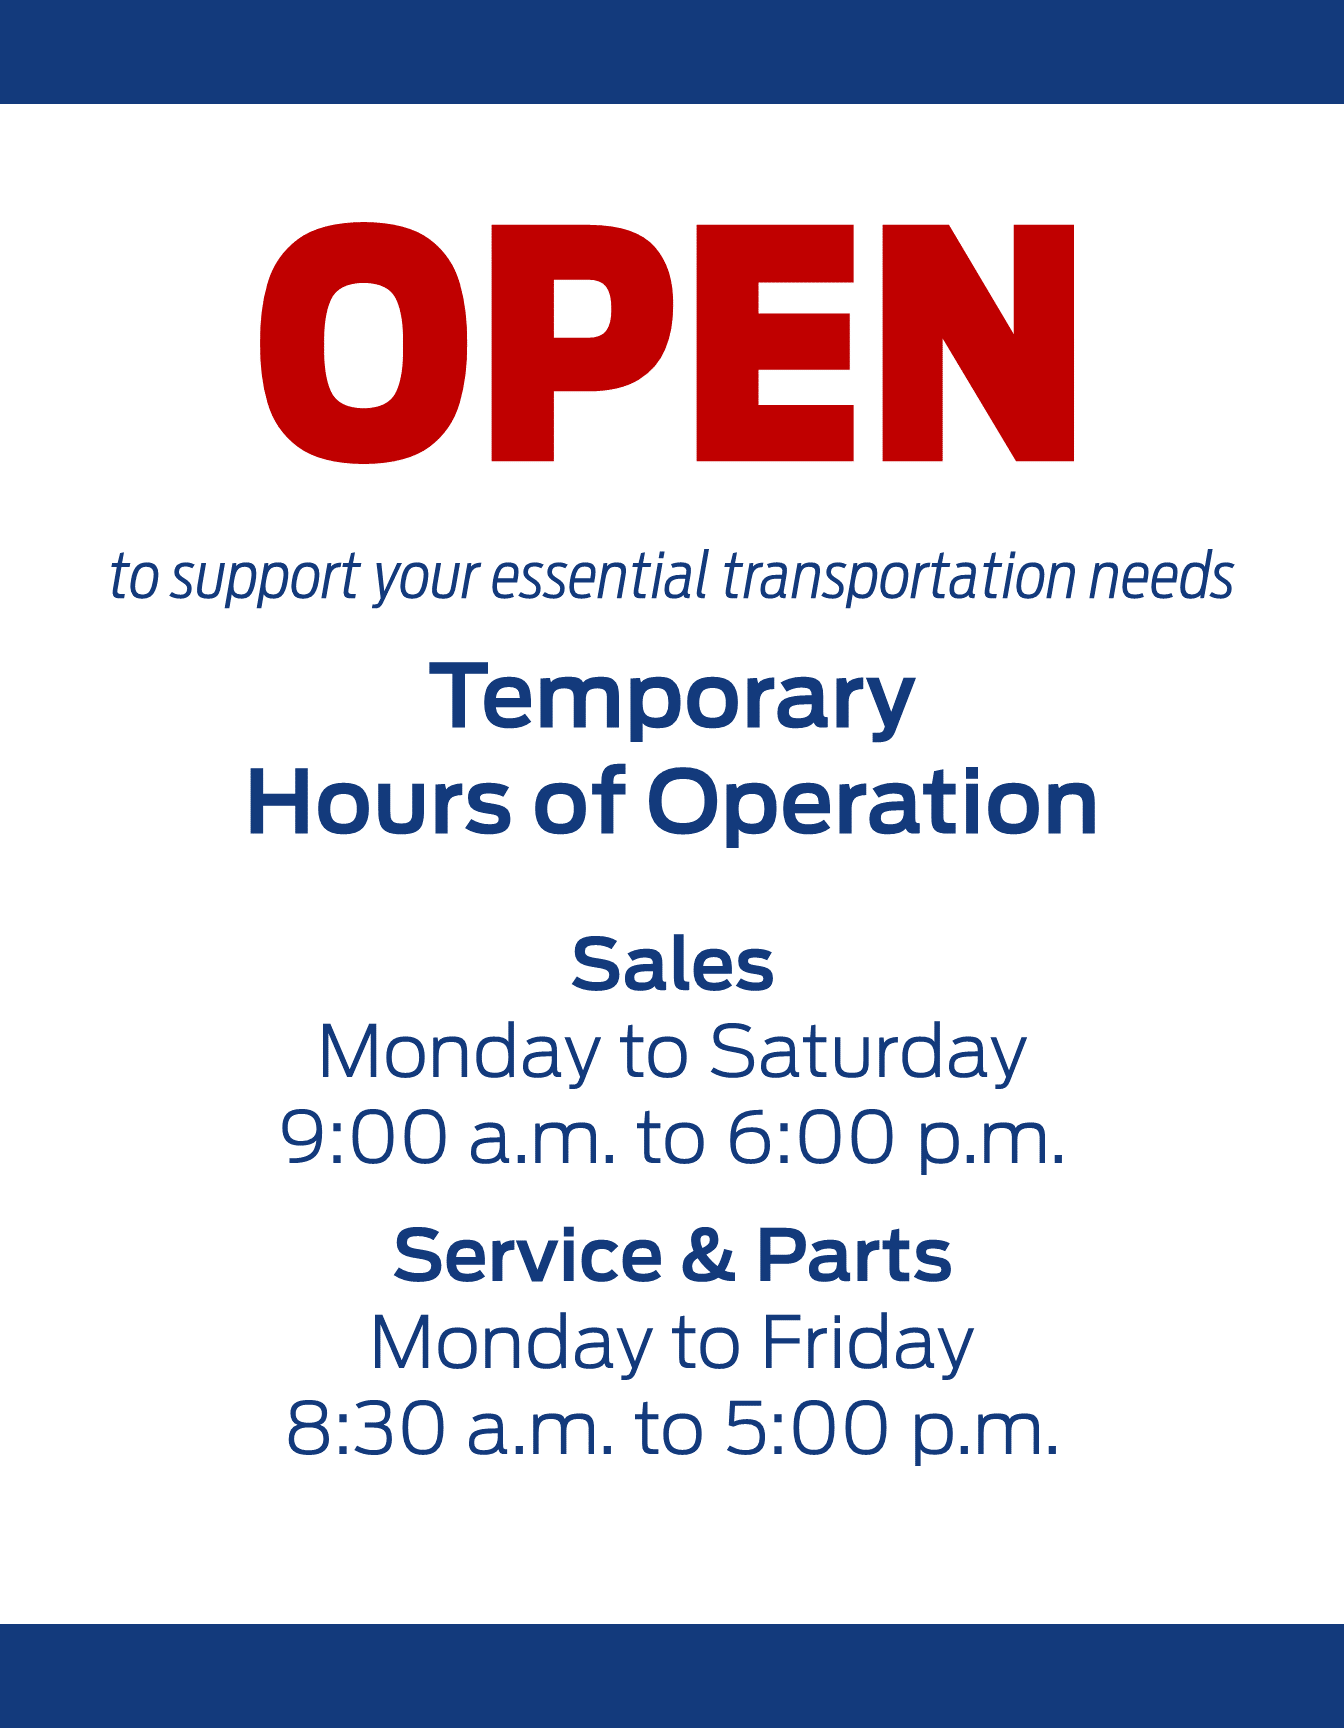 Temporary Hours of Operation COVID-19